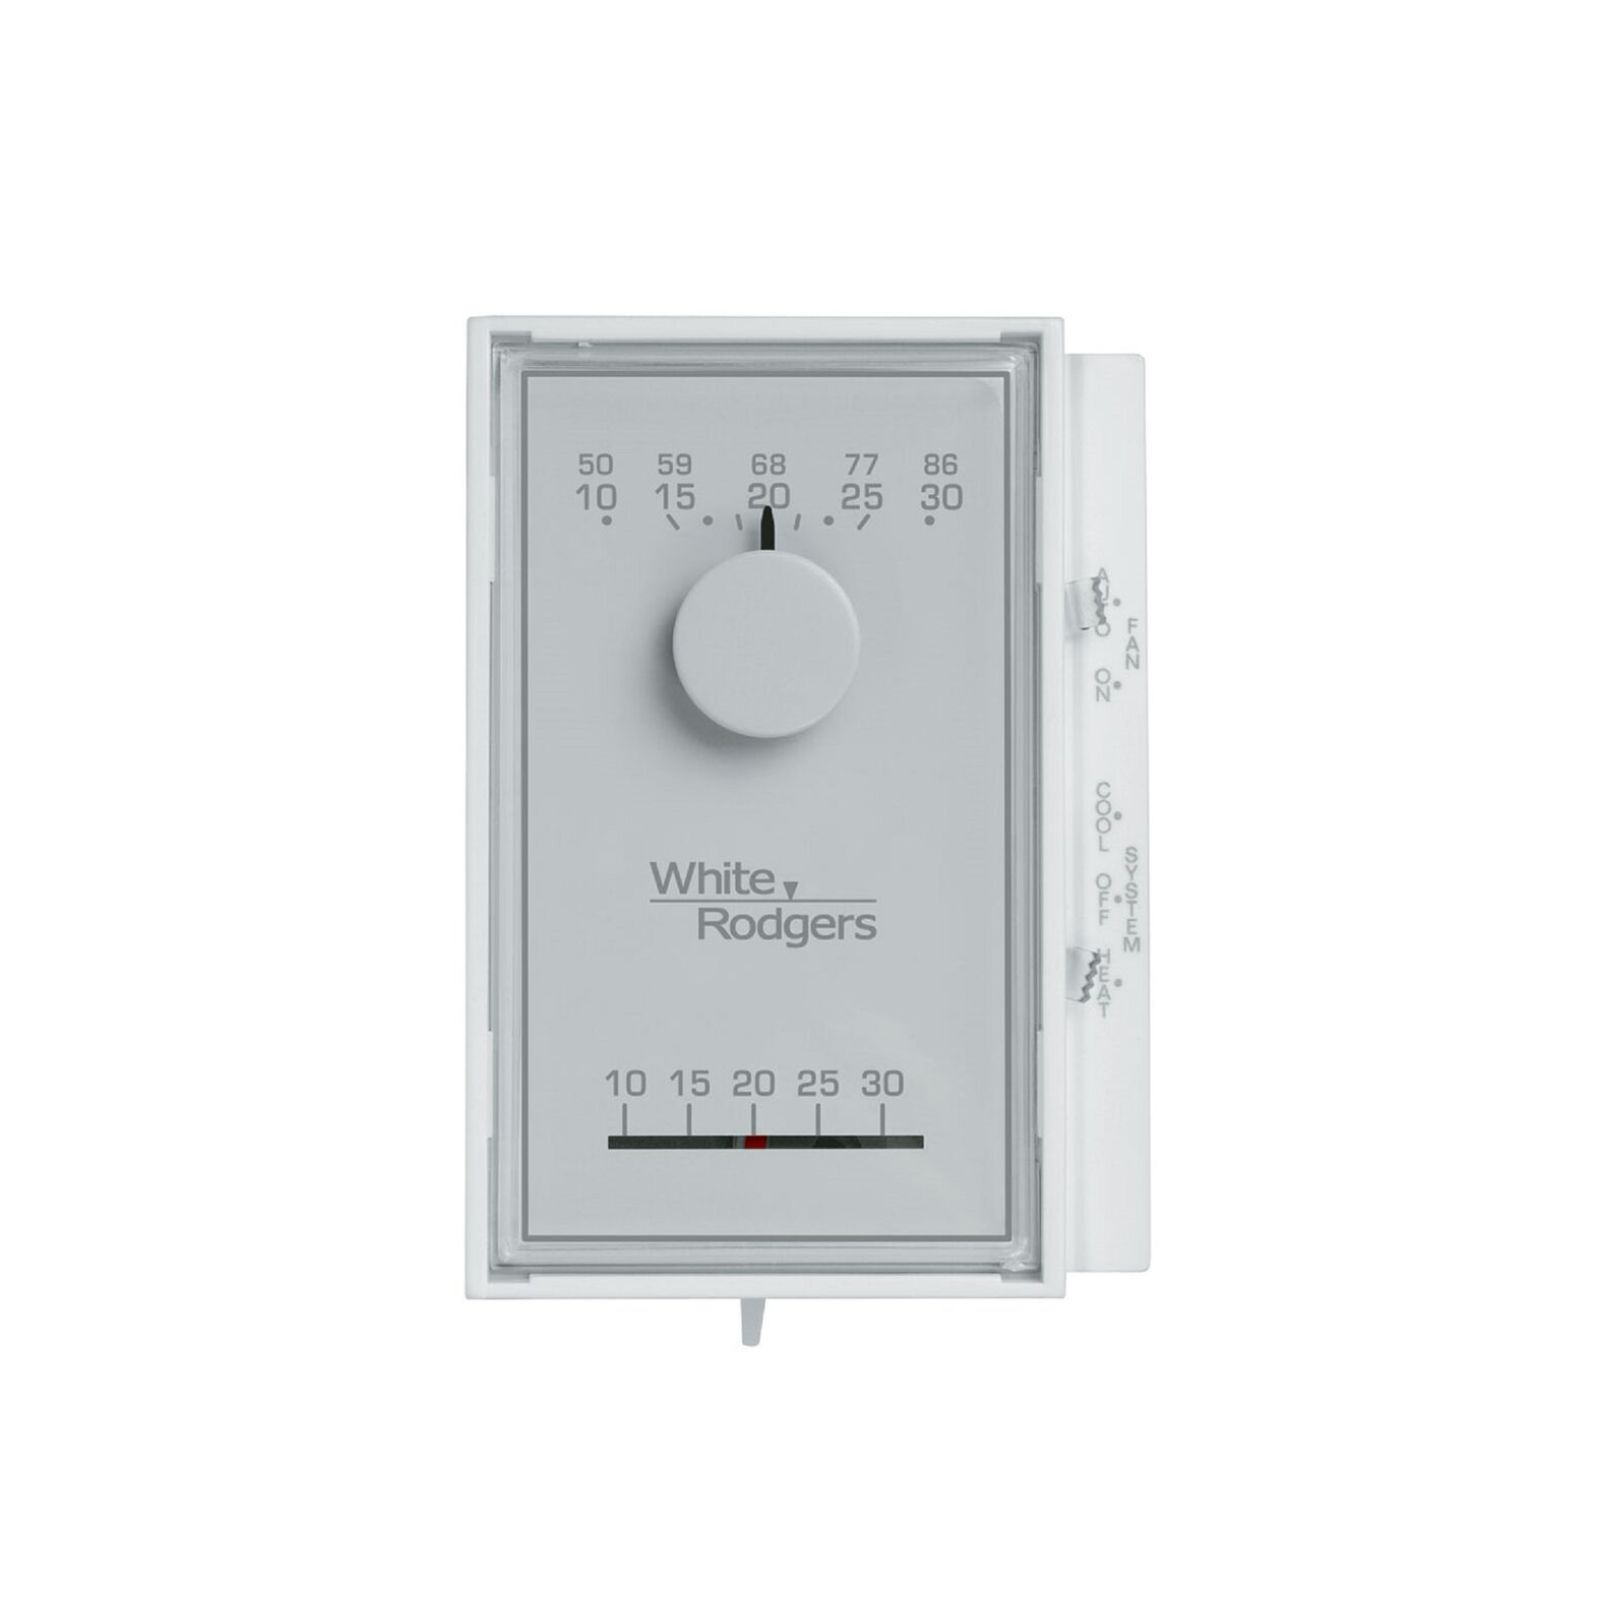 White-Rodgers 1E56N-444 - White-Rogers Mercury Free Mechanical Vertical Thermostat 1H/1C